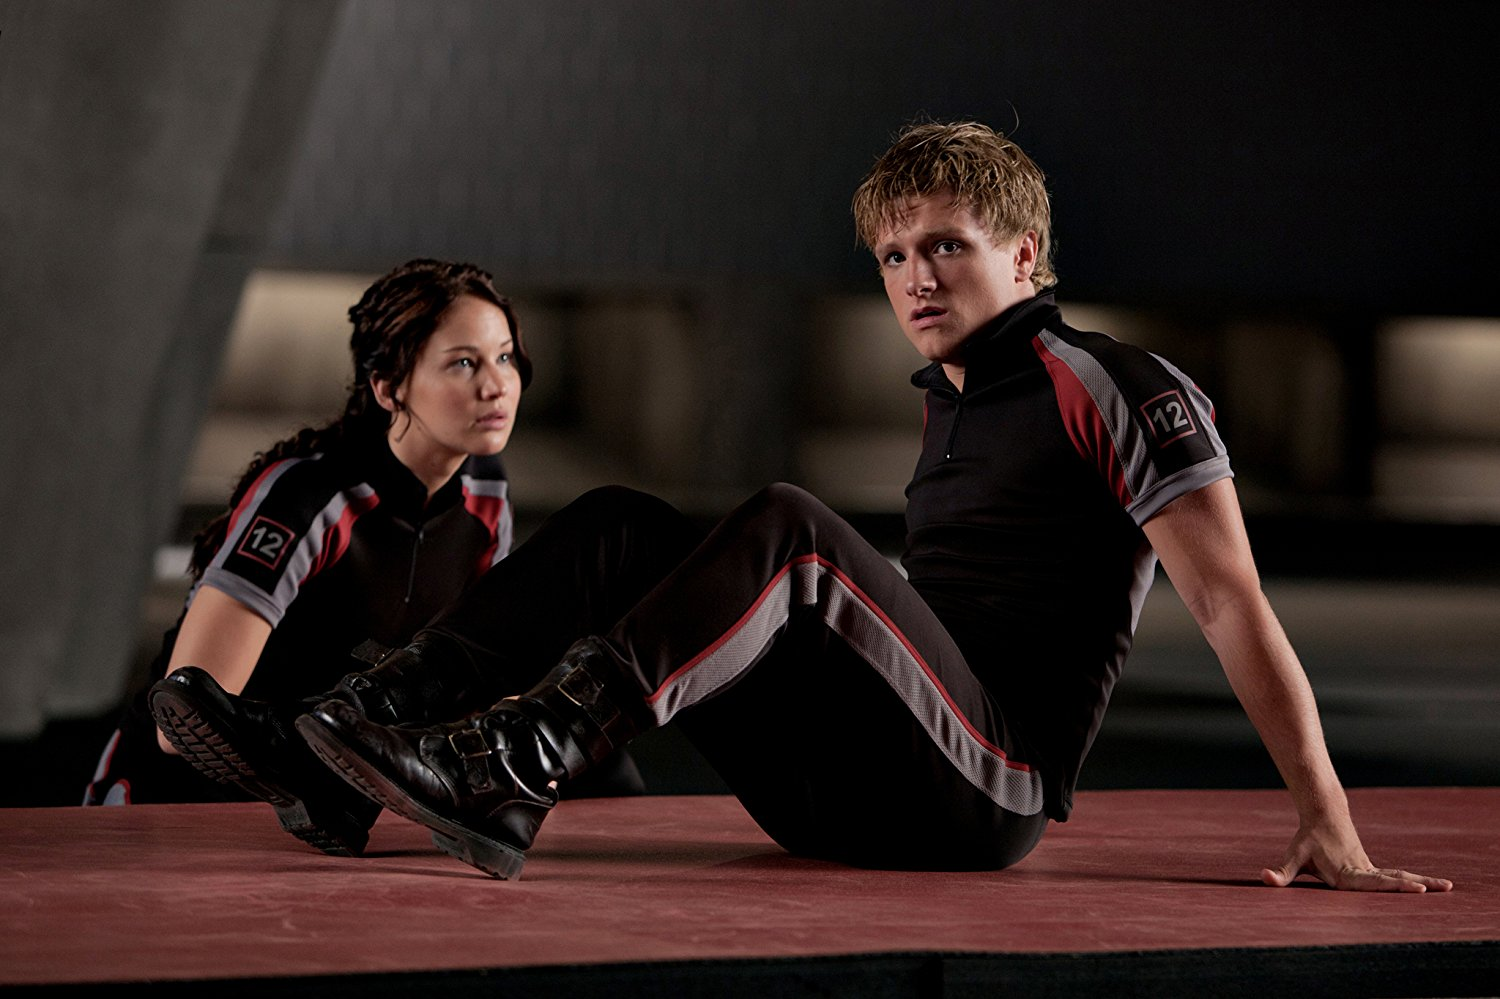 Katniss Everdeen (Jennifer Lawrence) and Peeta Mellark (Josh Hutcherson) in The Hunger Games (2012)